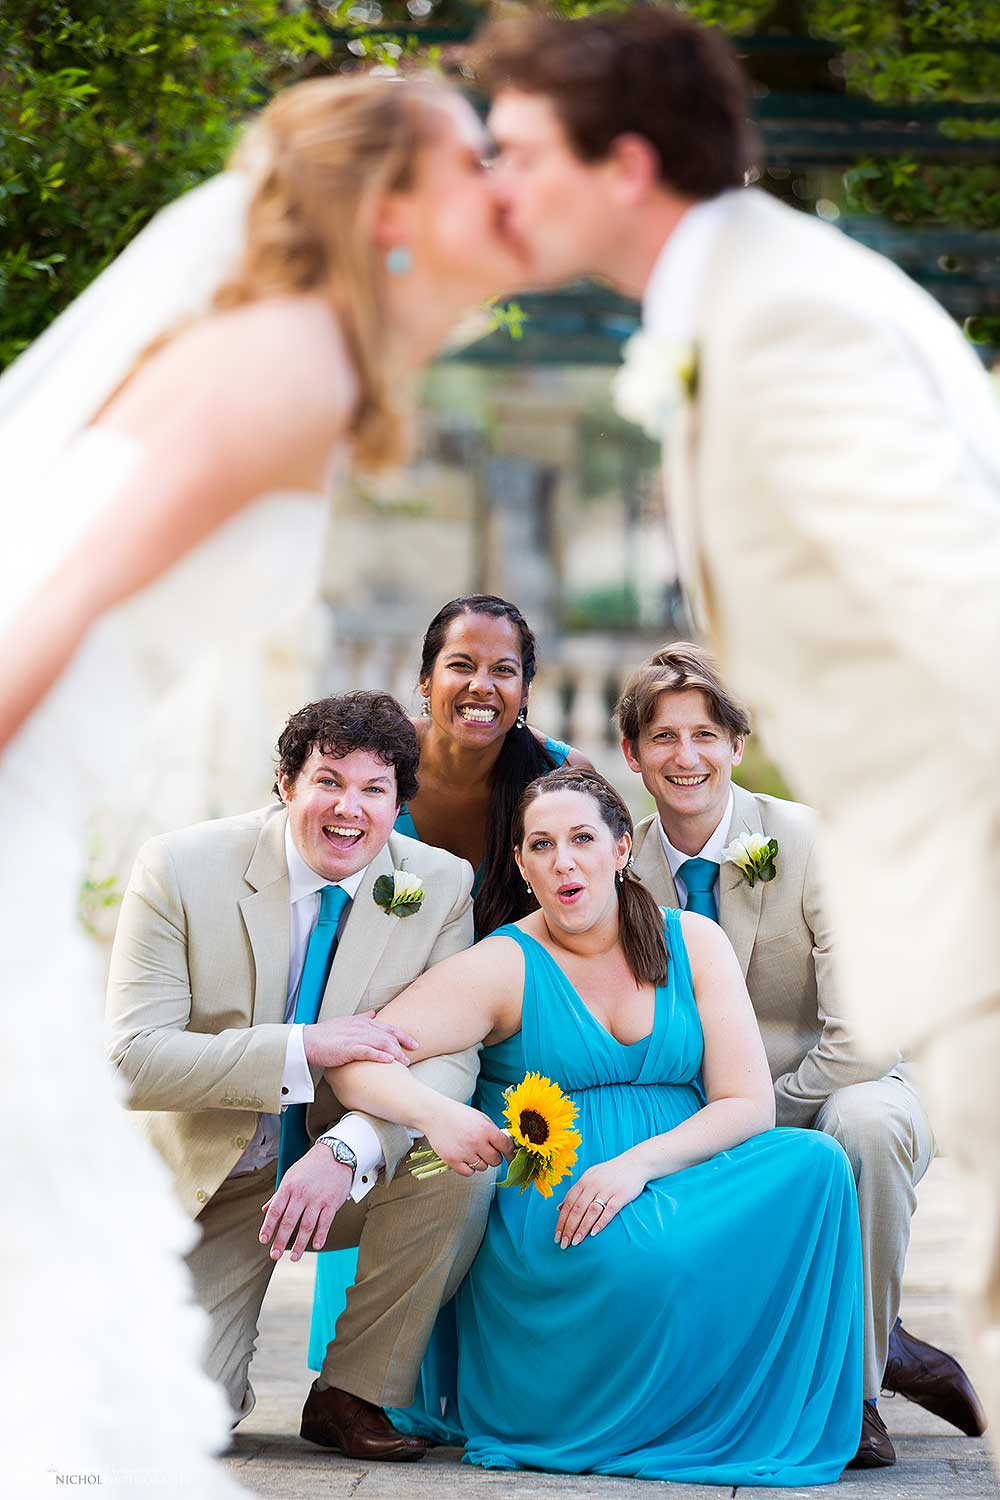 bridesmaids-groomsmen-bride-groom-kissing-group-shot-idea-photography